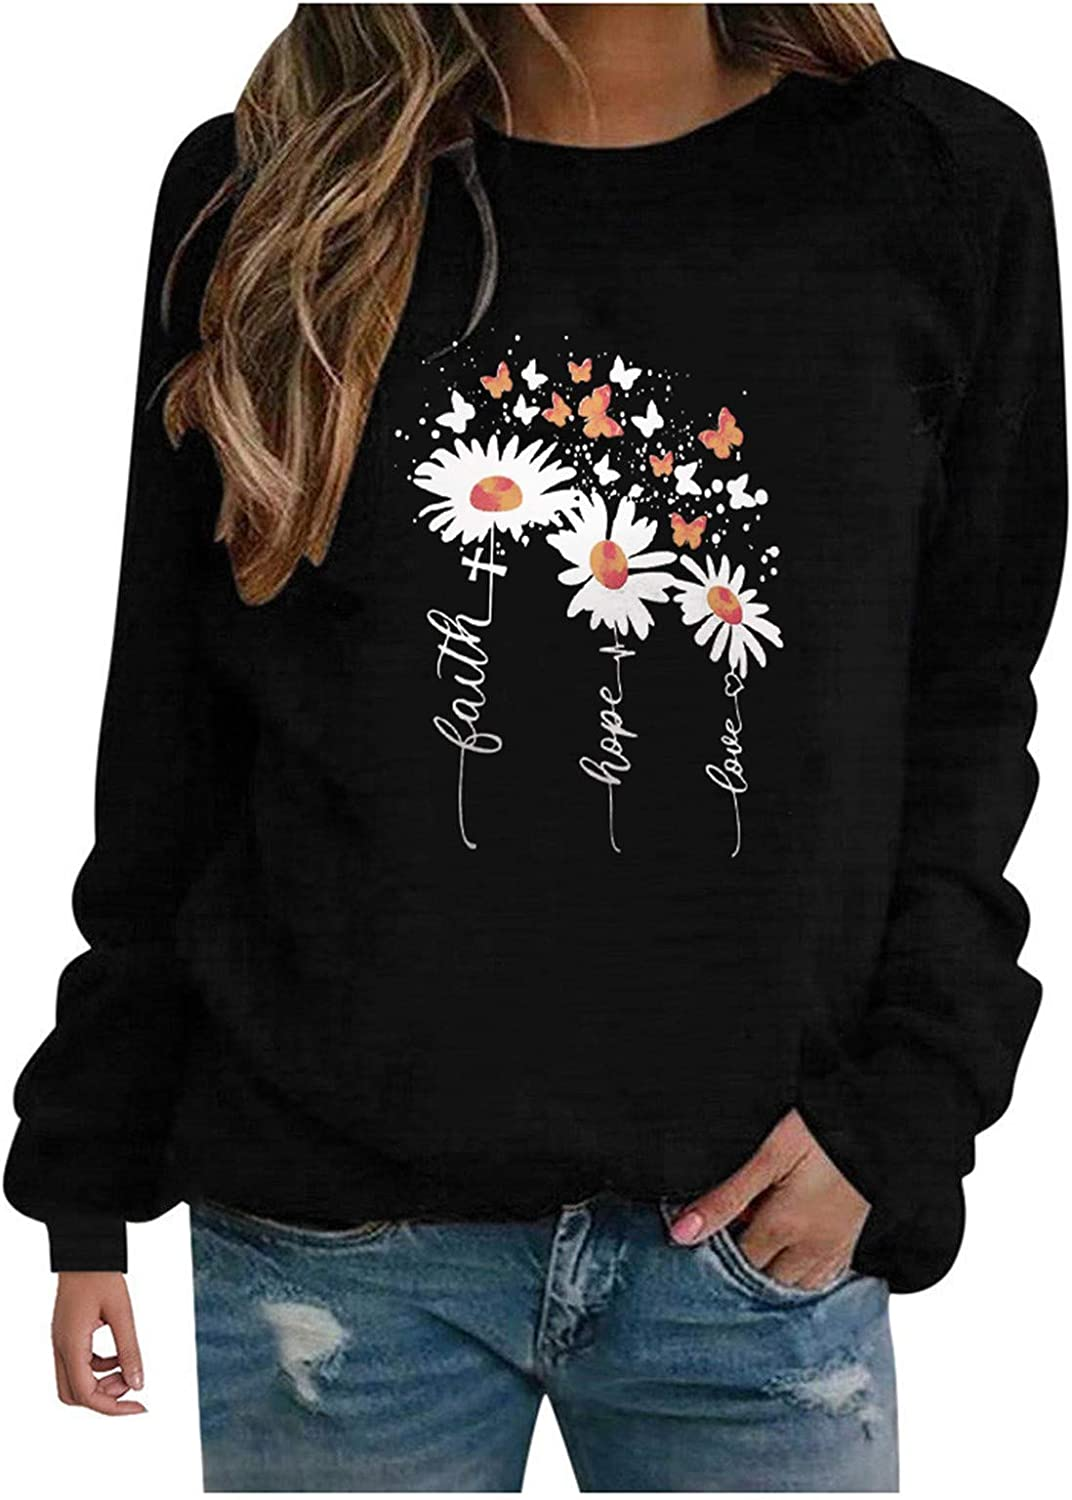 Eoailr Pullover New Shipping Free Shipping Tops New life for Women Long Floral Women's Casual Sleev